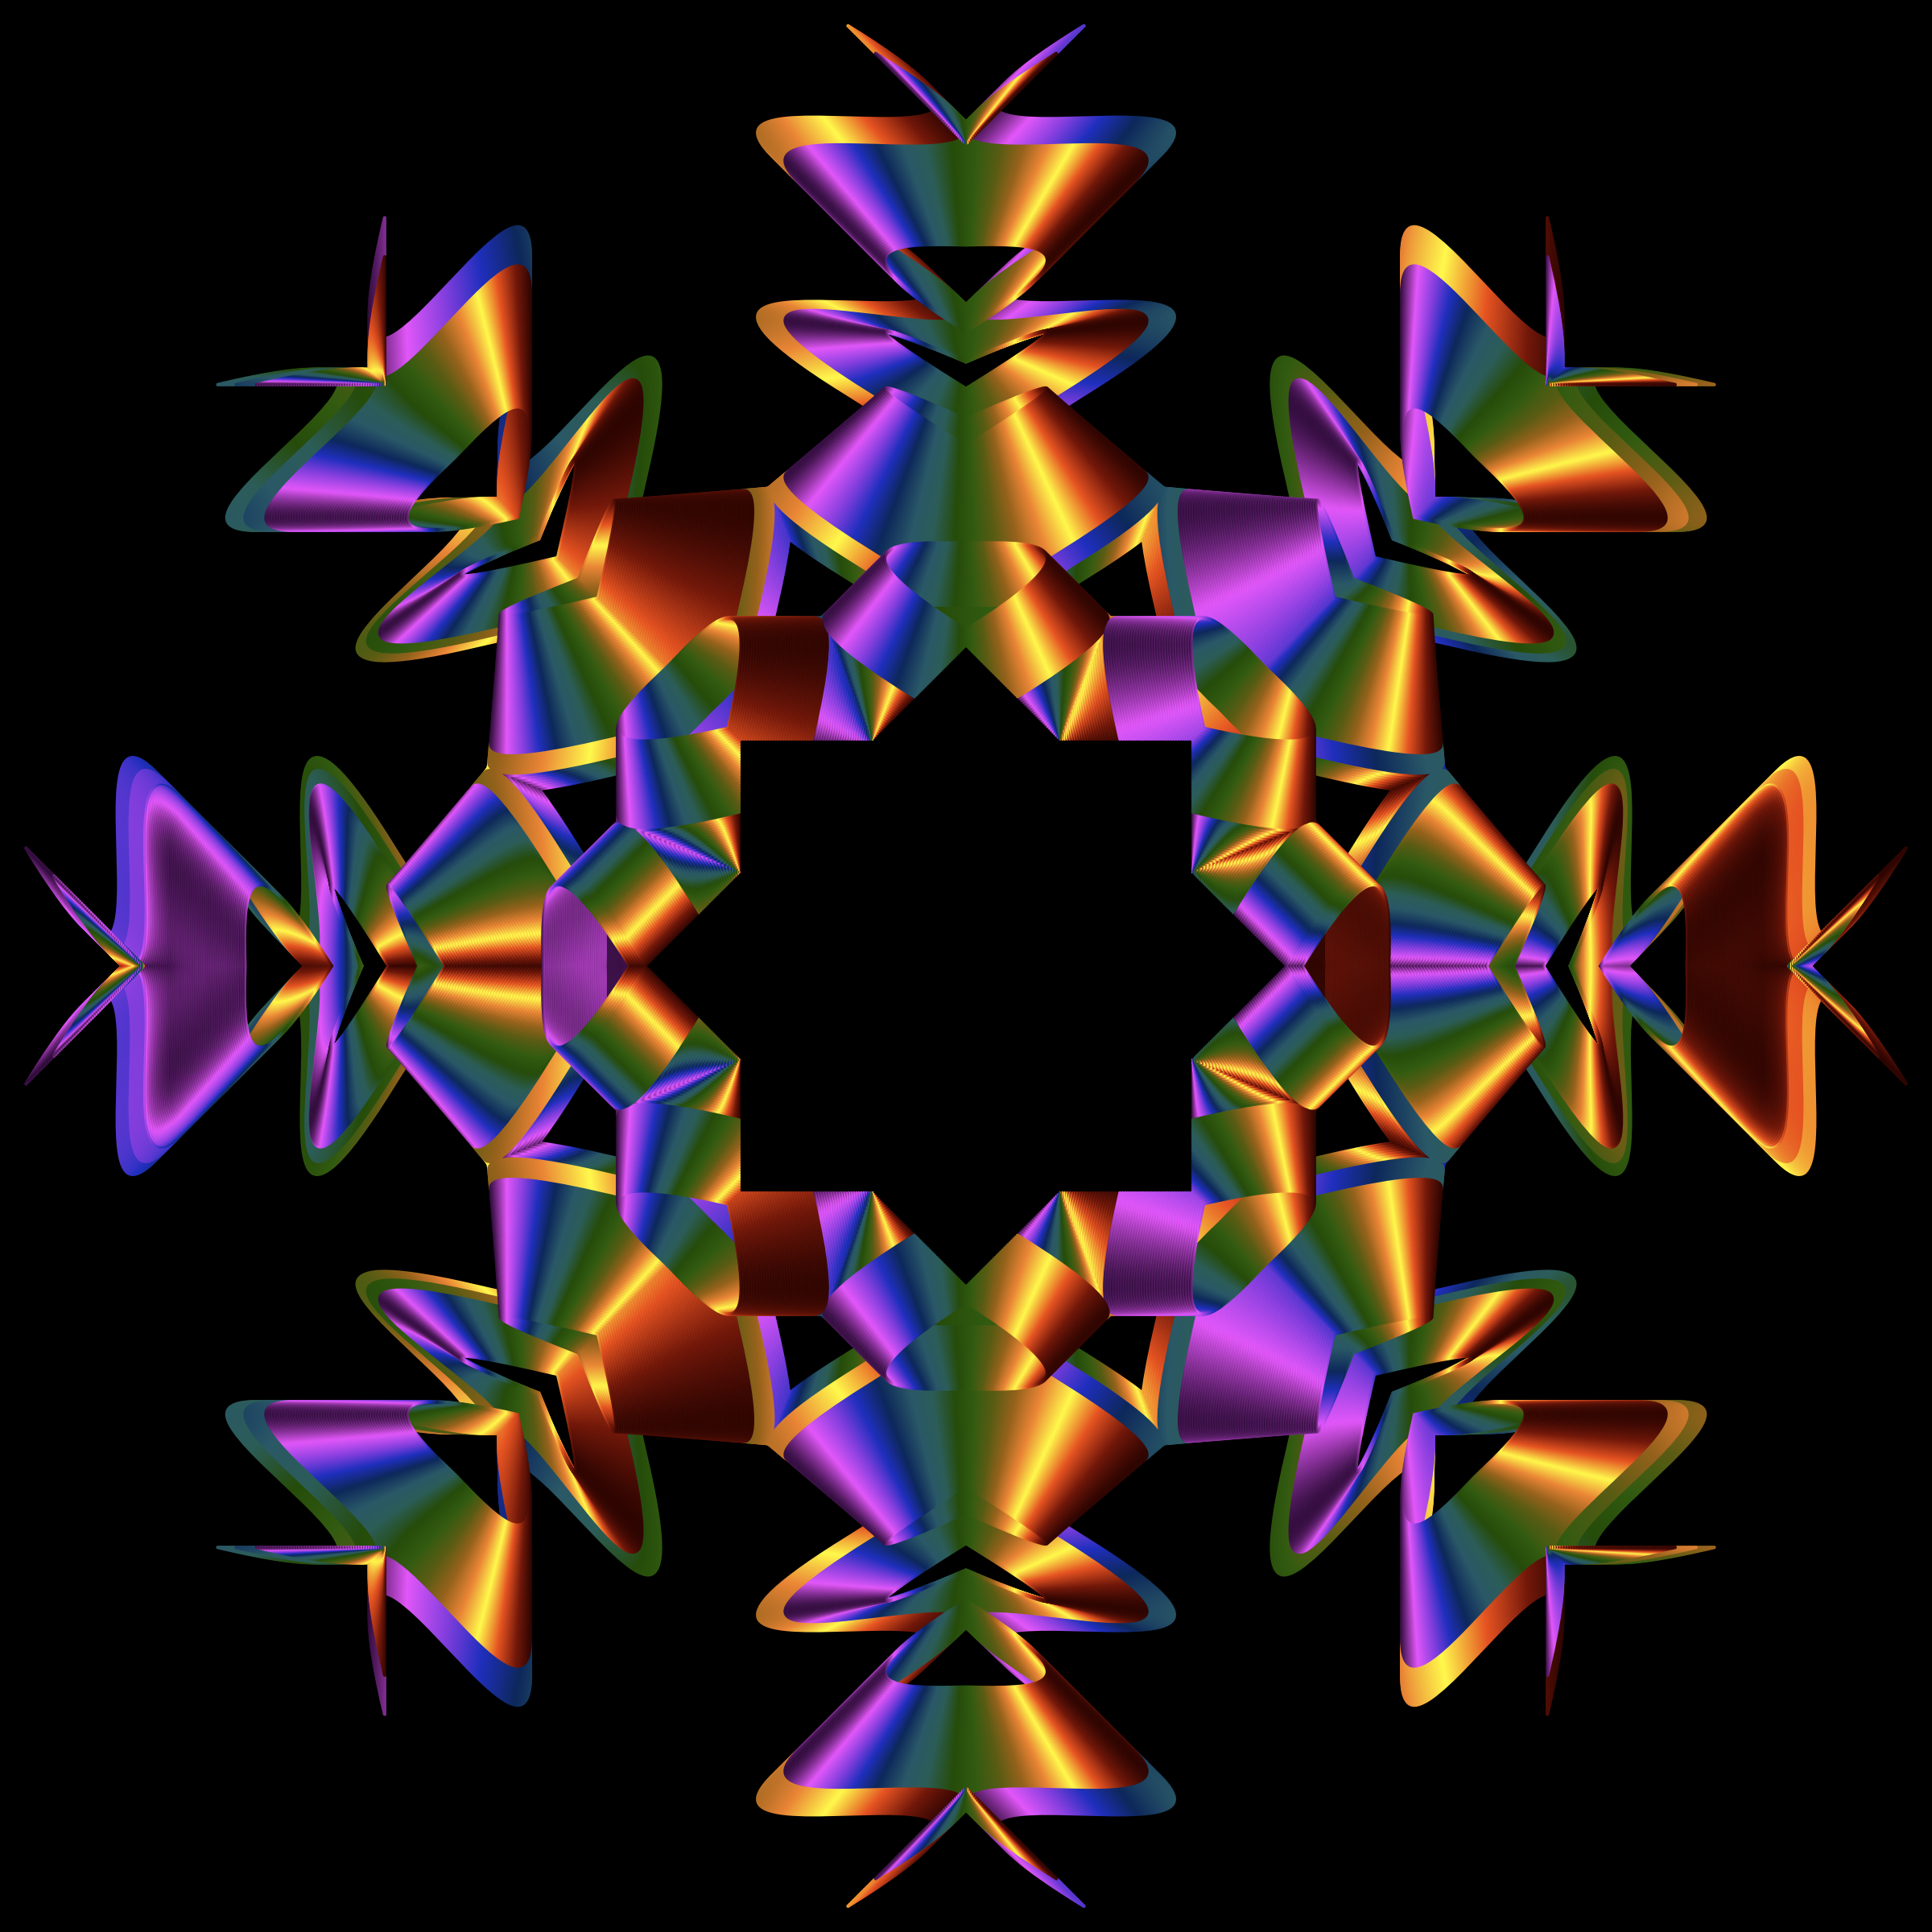 Prismatic Star Line Art 4 by GDJ